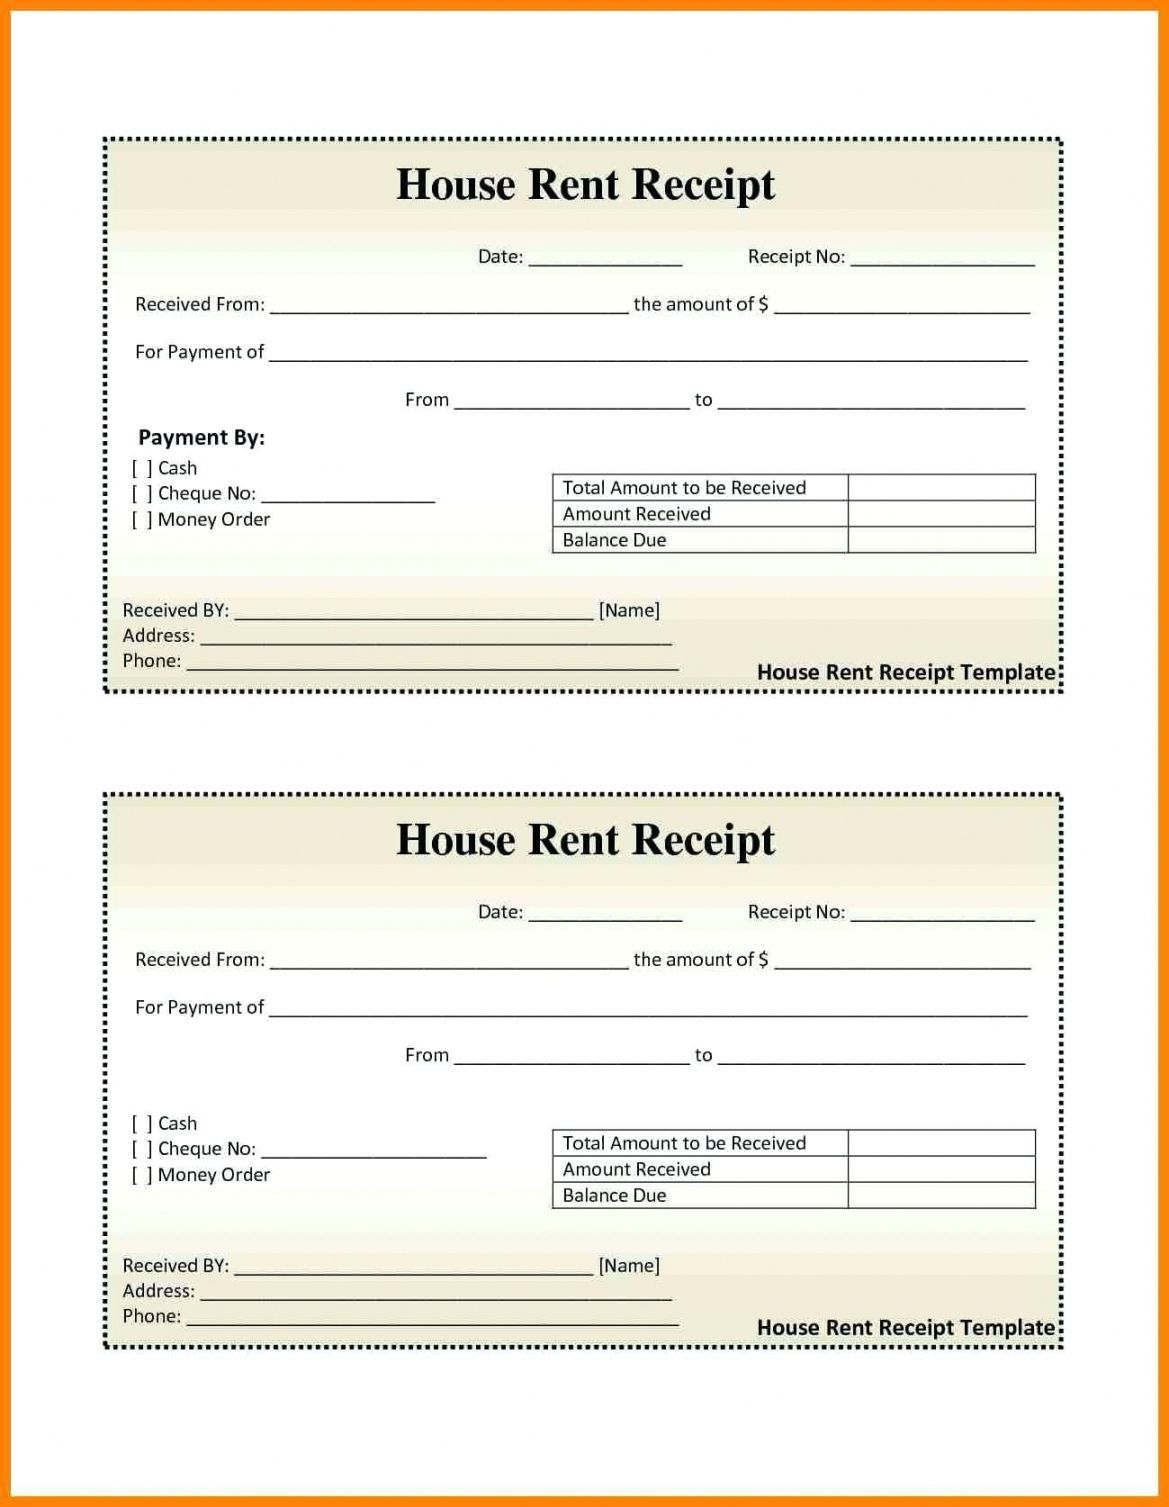 000 Excellent House Rent Receipt Sample Doc Photo  Template Word Document Free Download Format For Income TaxFull